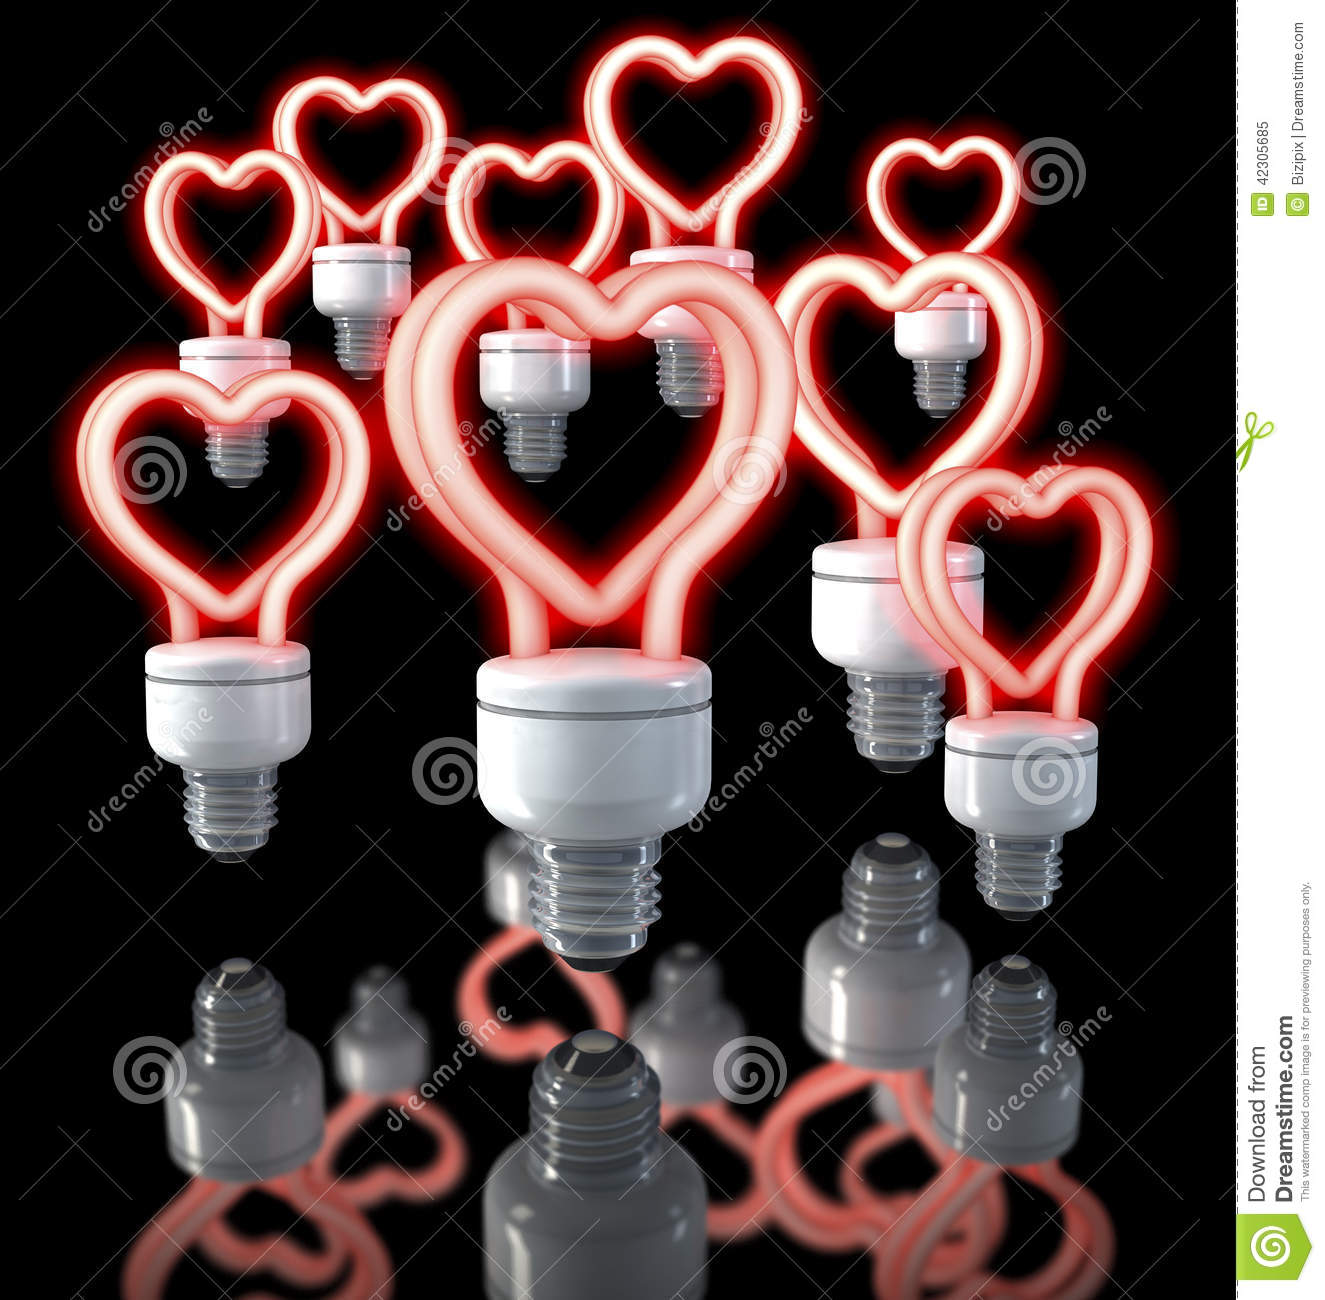 Fluorescent Light Glowing Red: Group Of Colorful Fluorescent Lamps, Heart Shaped, Red